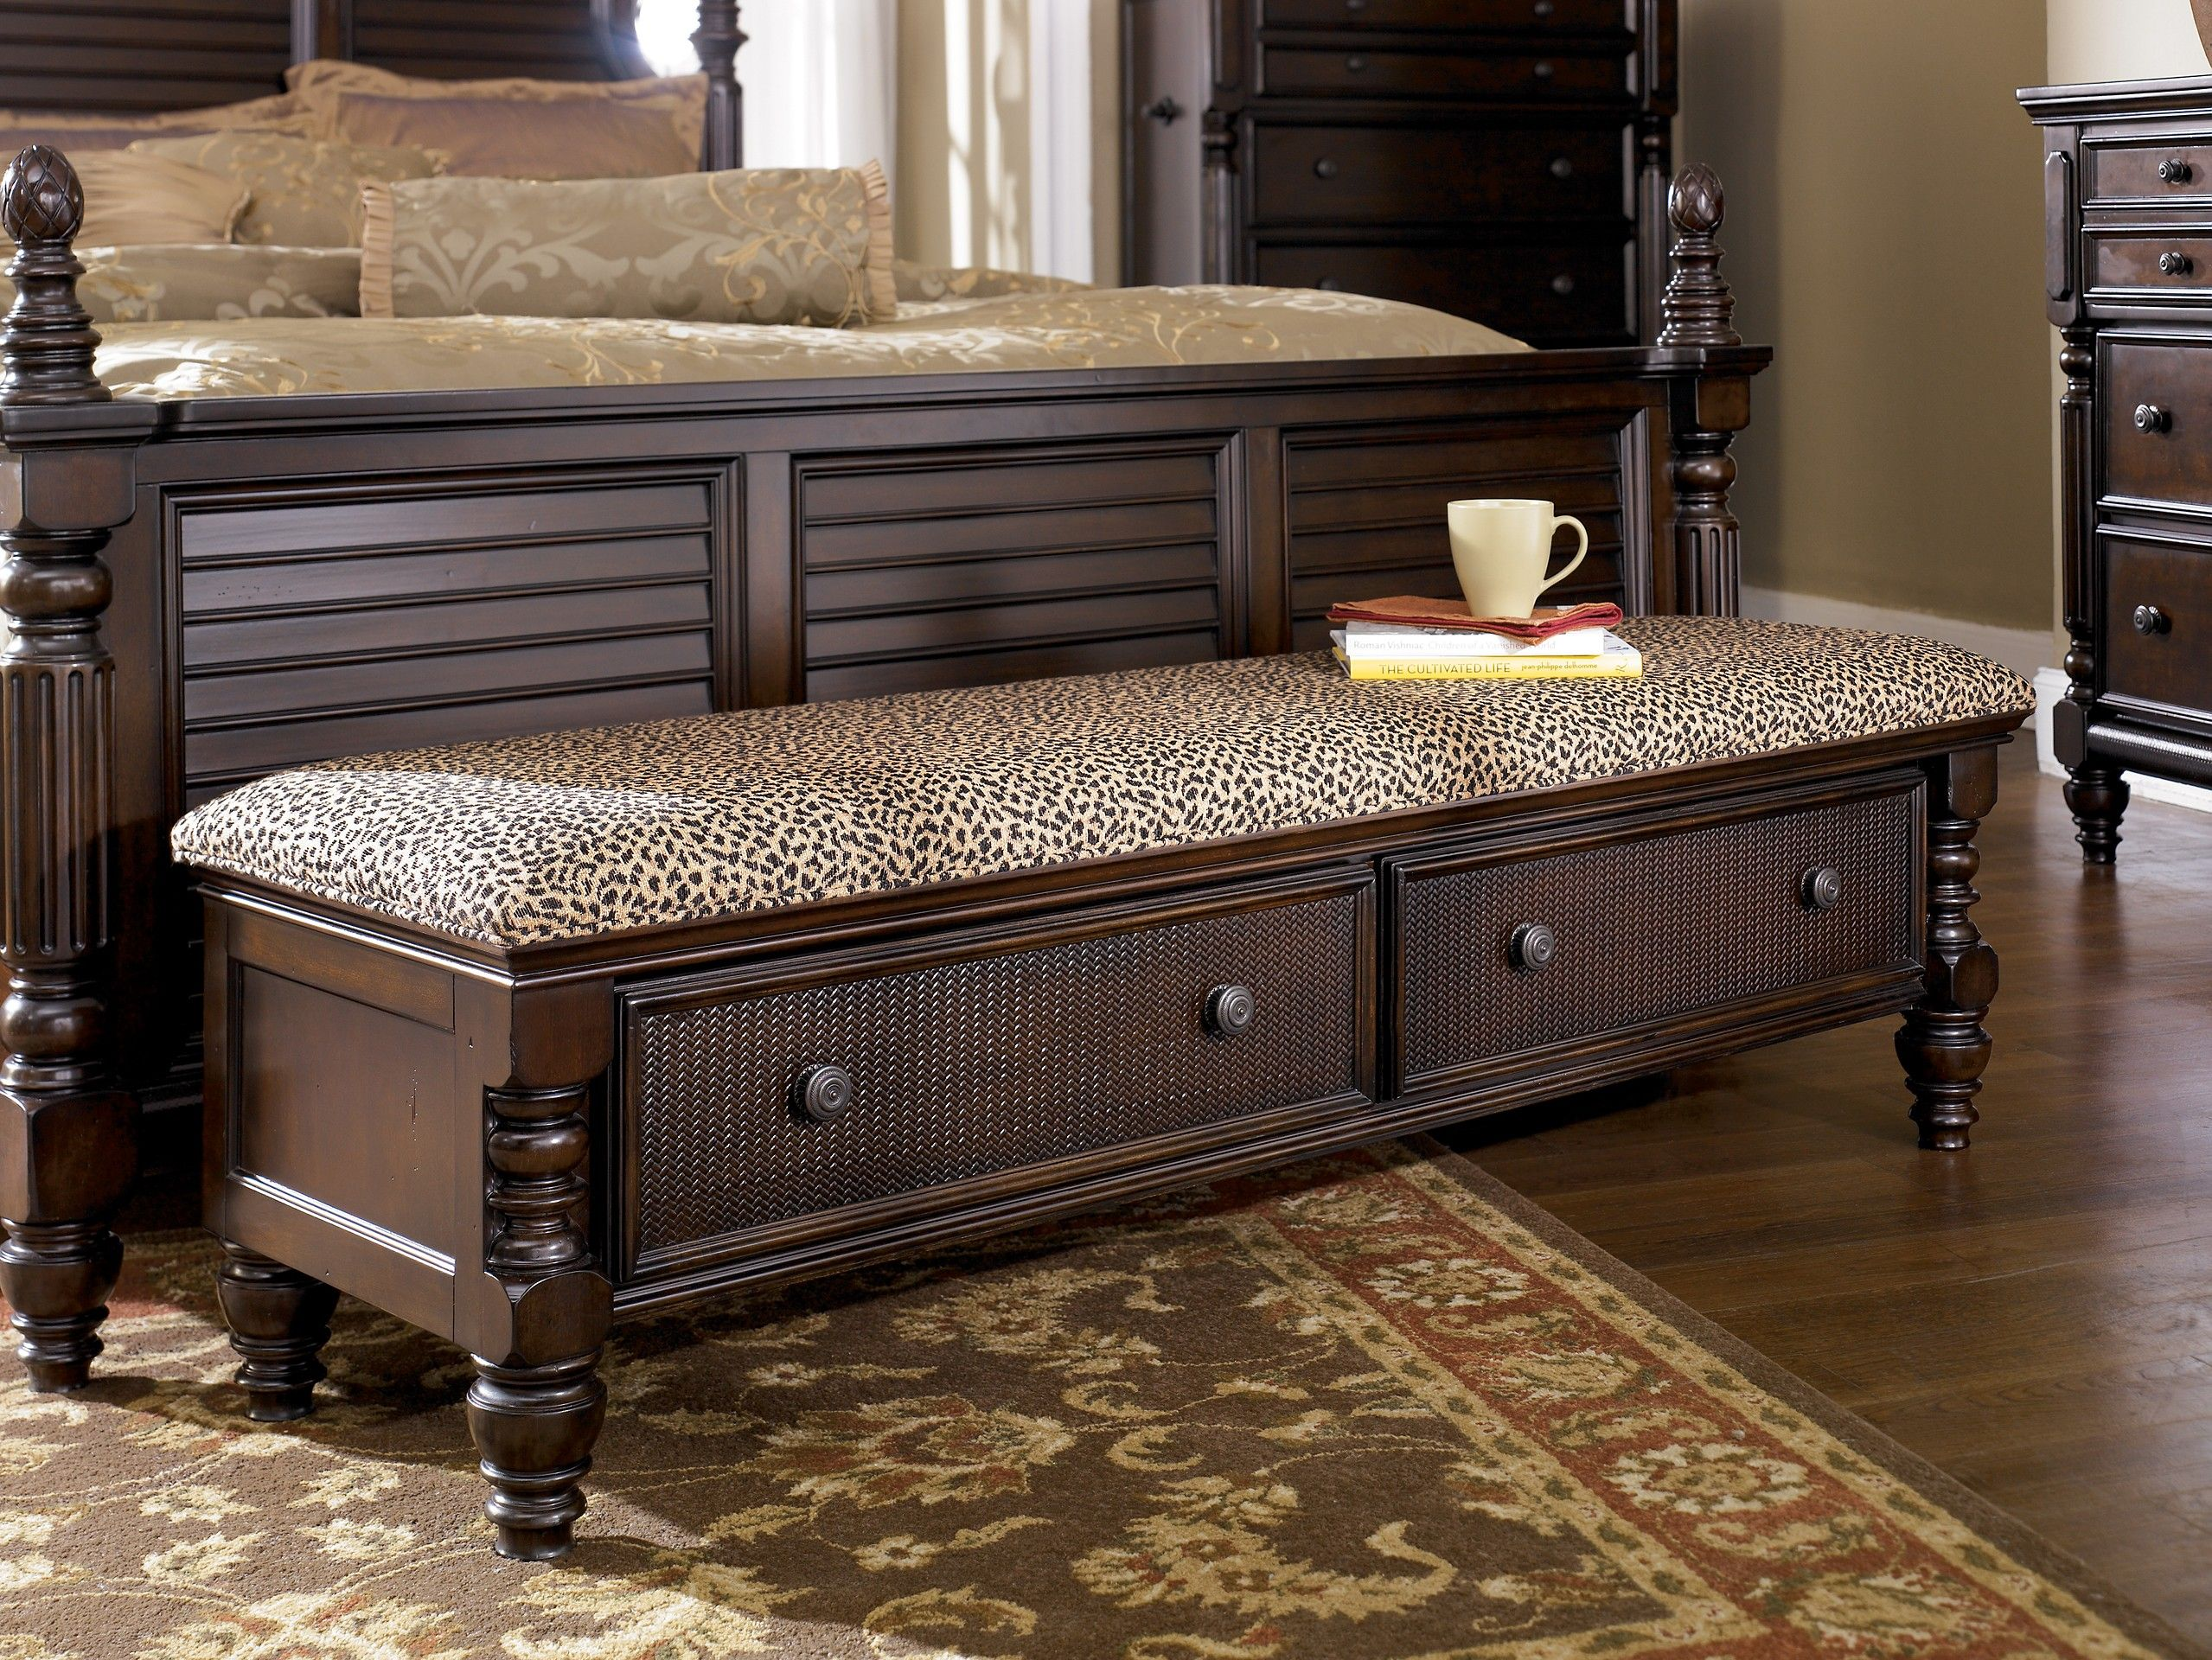 Ashley key town b668 09 millennium dark brown bedroom storage bench with its sophisticated - Key town bedroom set ...